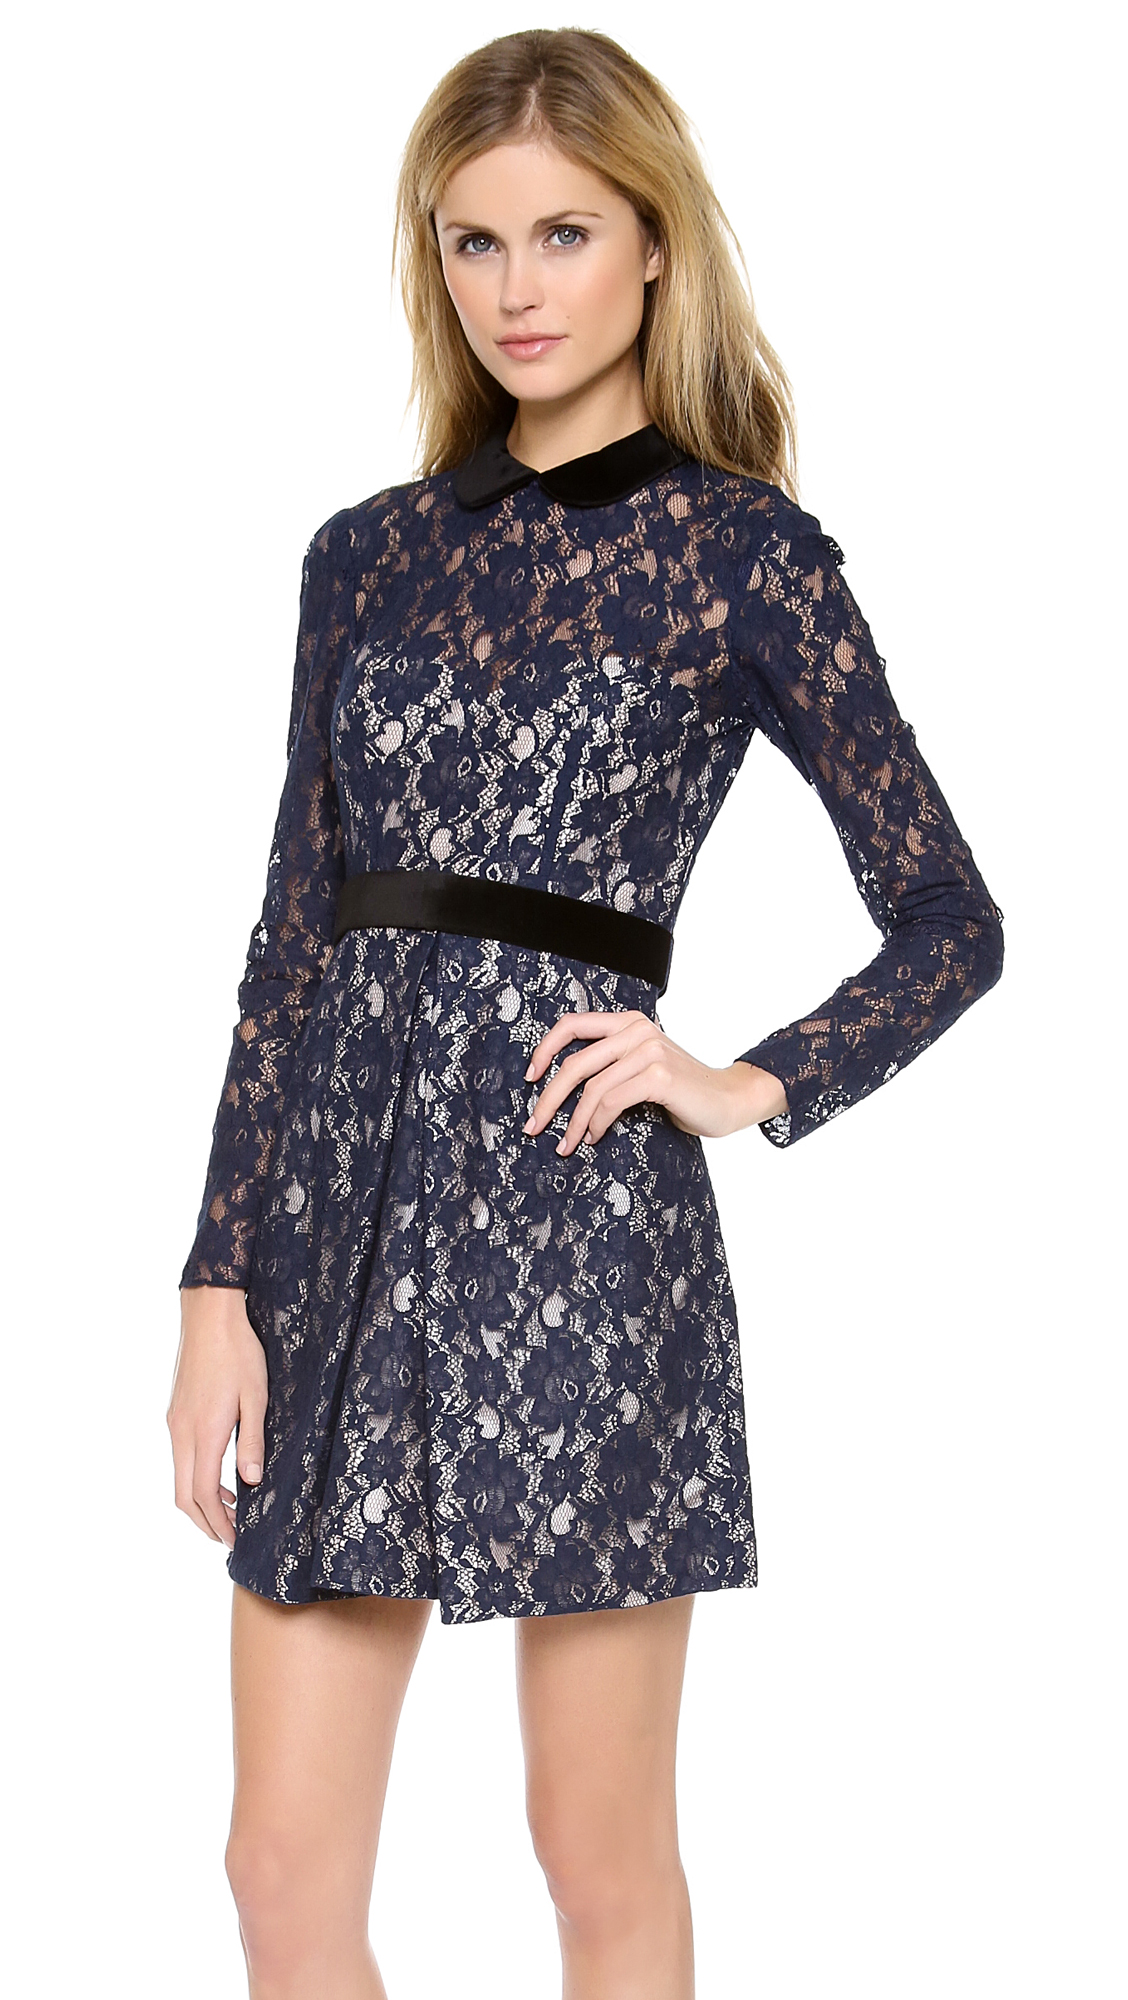 Long sleeved lace dresses